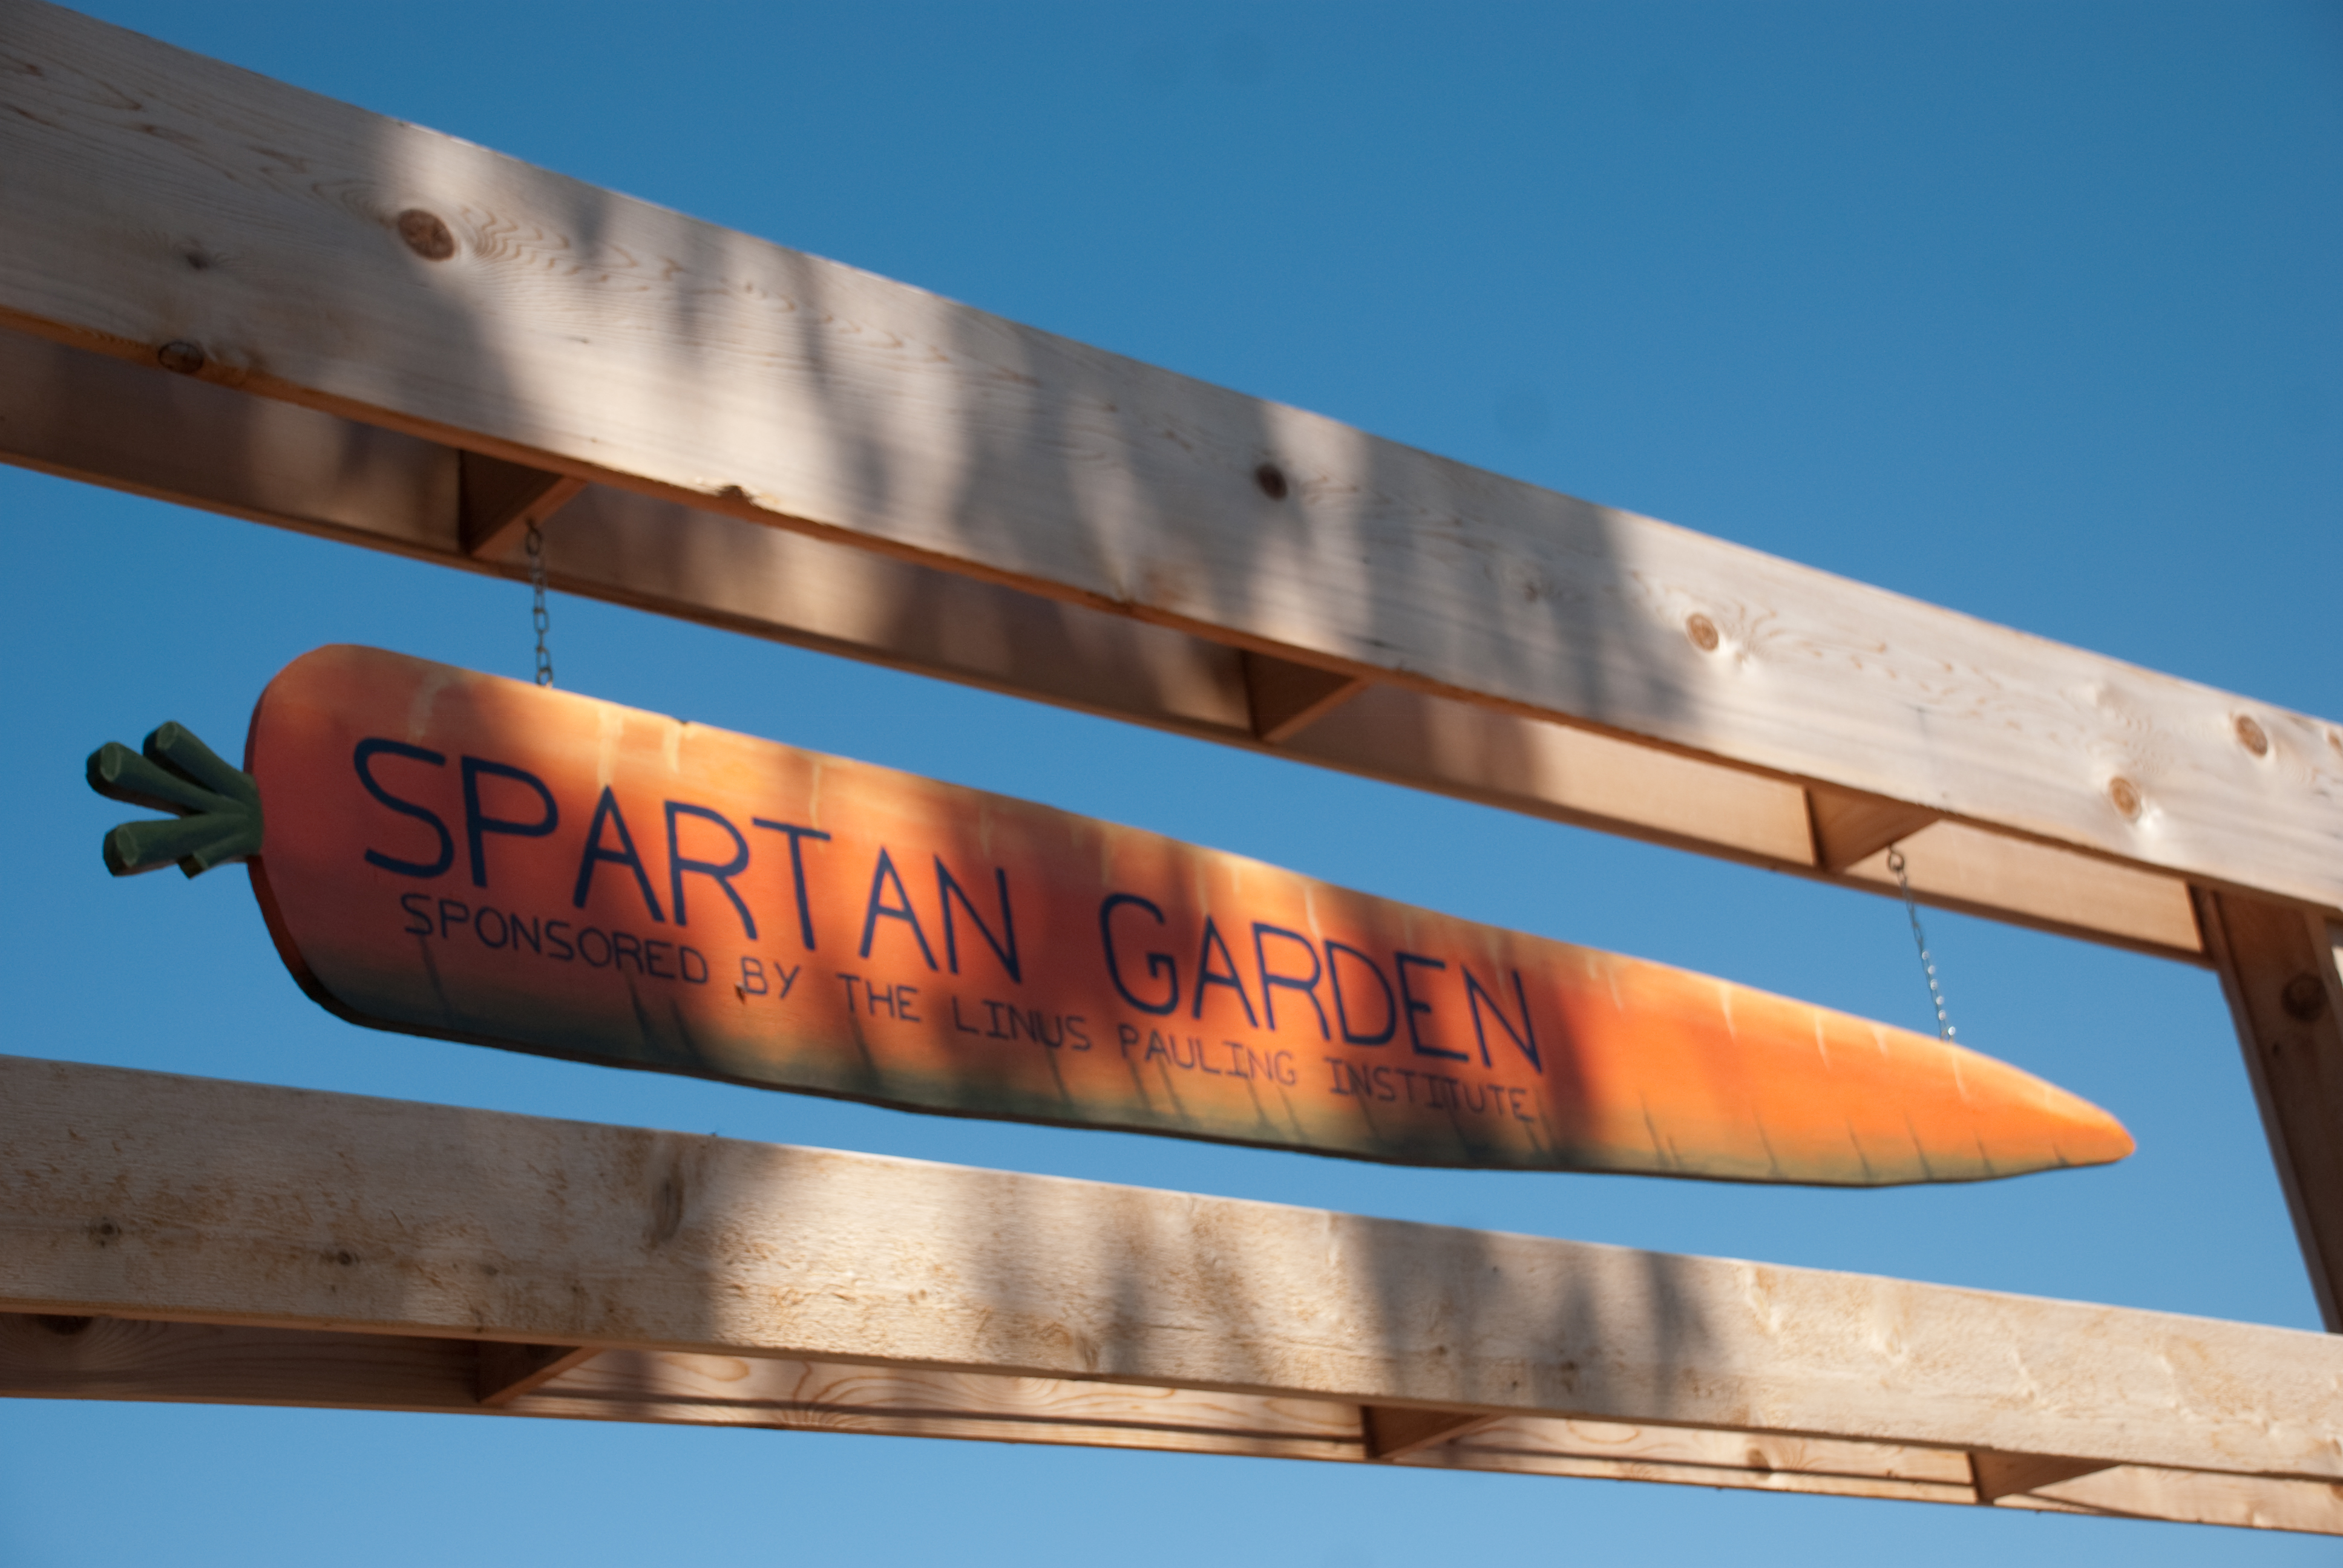 Spartan Garden Background